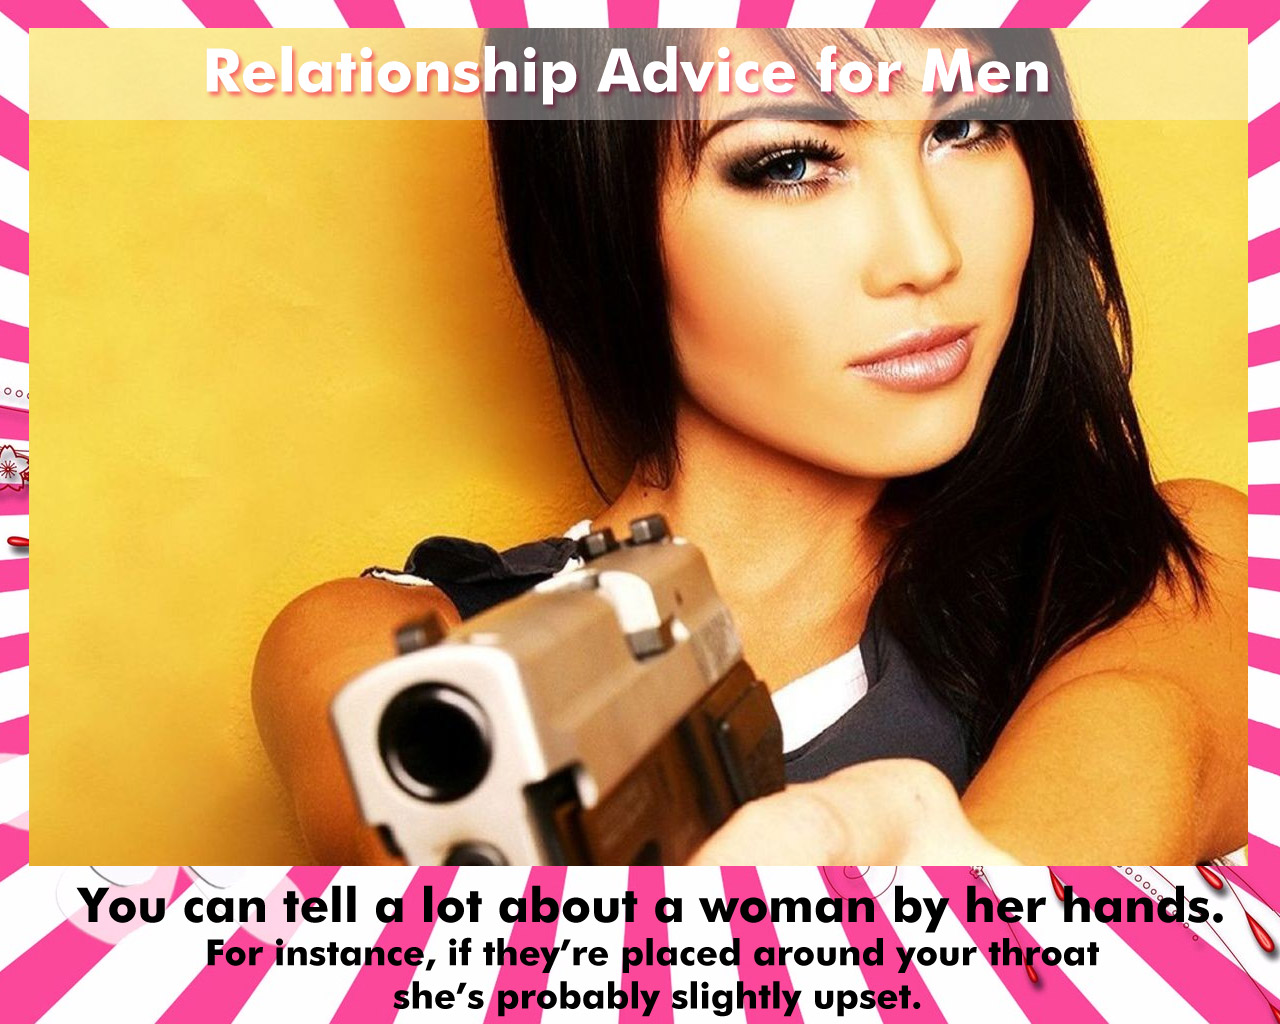 You Can Tell A Lot About A Woman By Her Hands - Badass Girl Wallpaper Quotes - HD Wallpaper